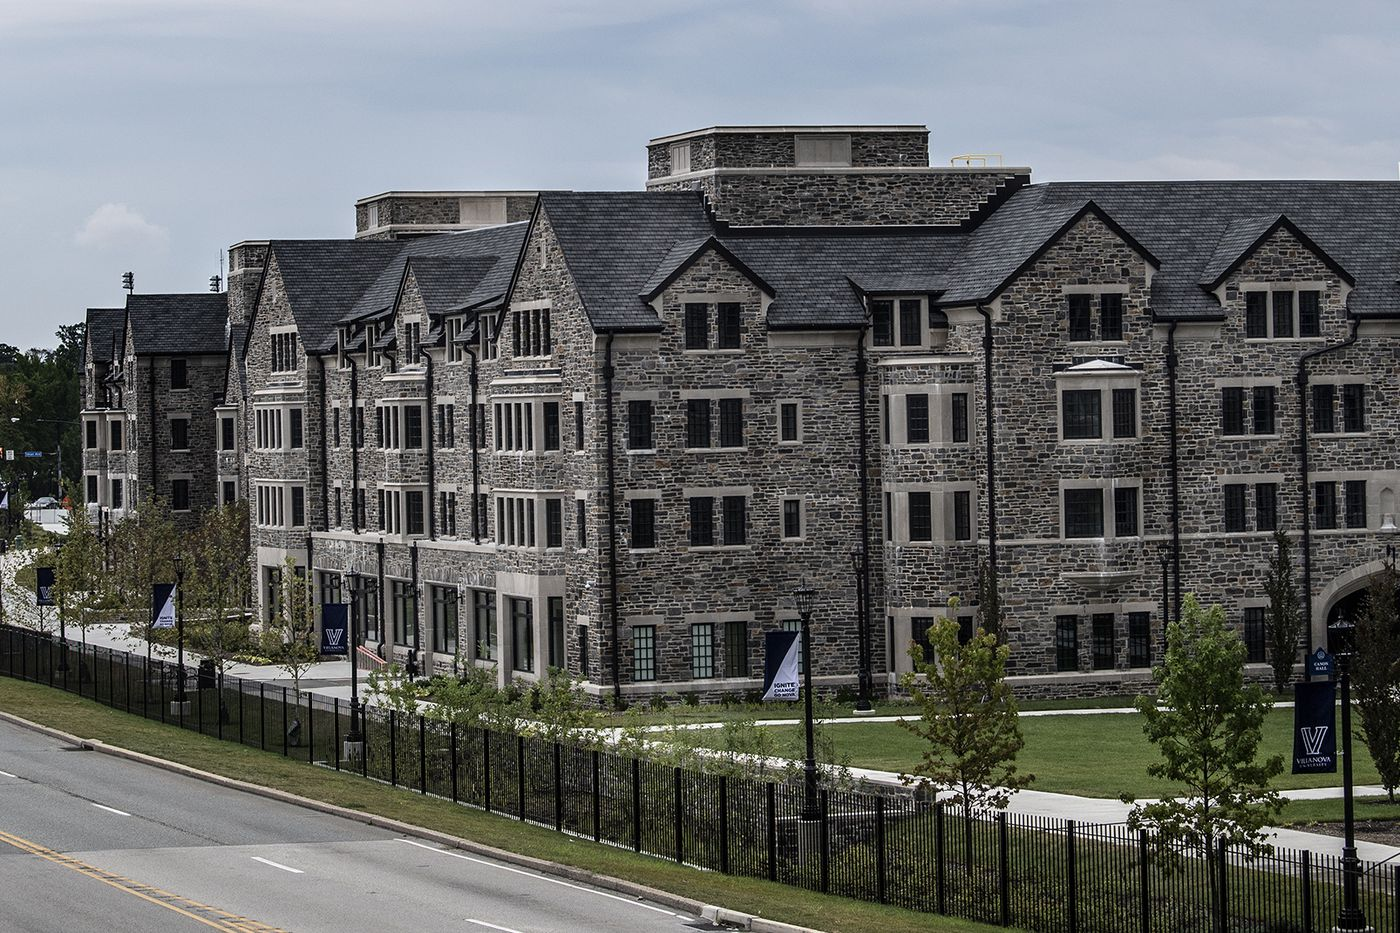 Villanova's New Residence Halls Offer the Latest in Water and Energy Conservation